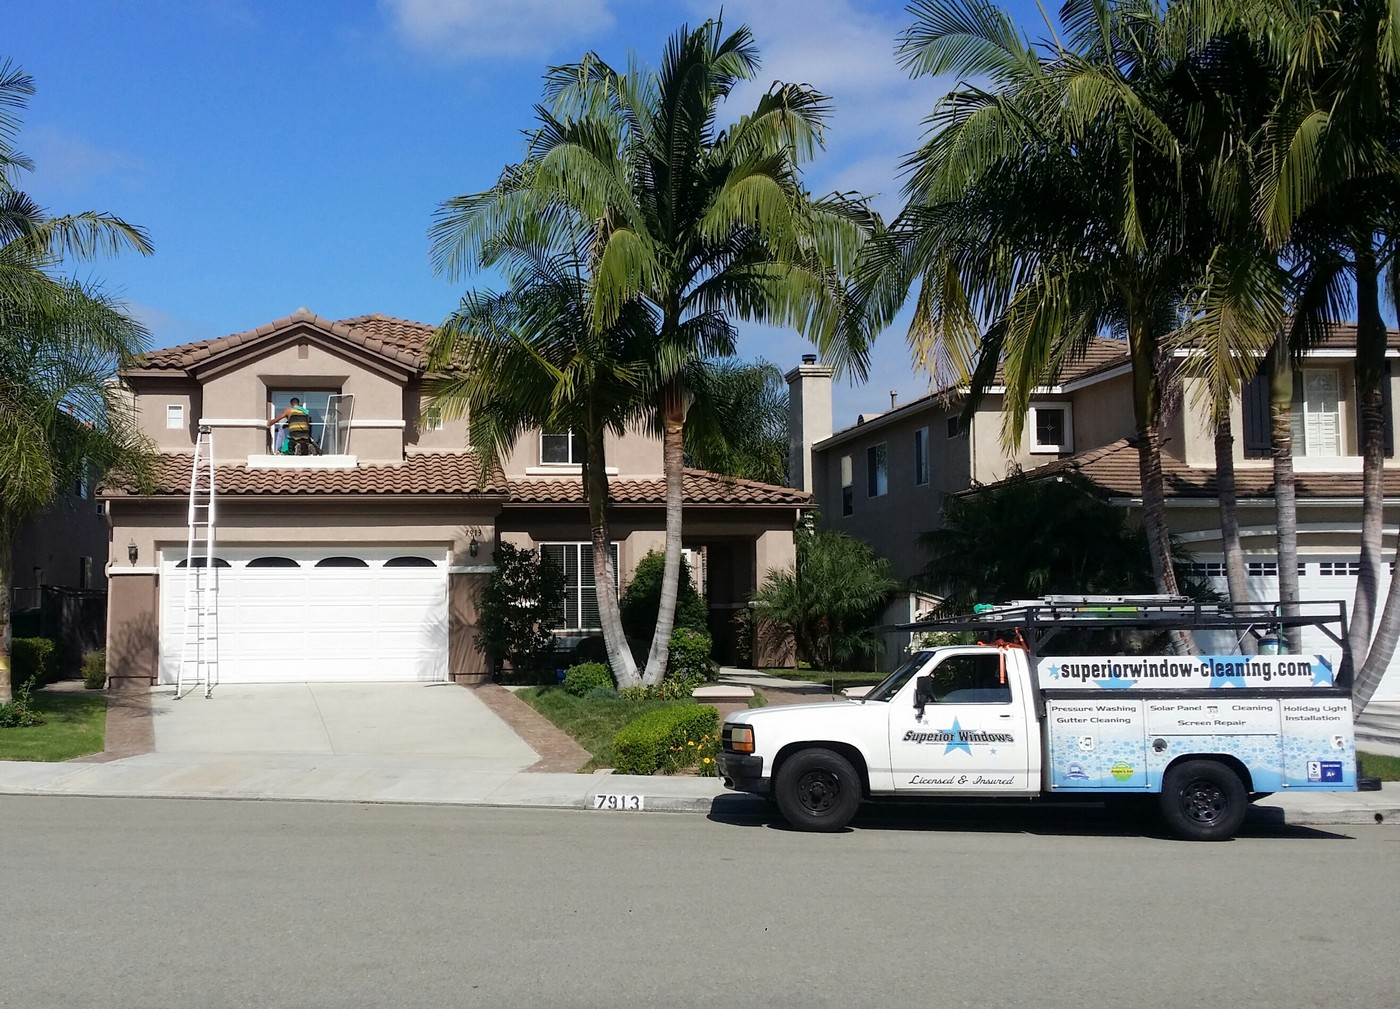 San Diego Window Cleaning, Gutter Cleaning and Holiday Light Installation